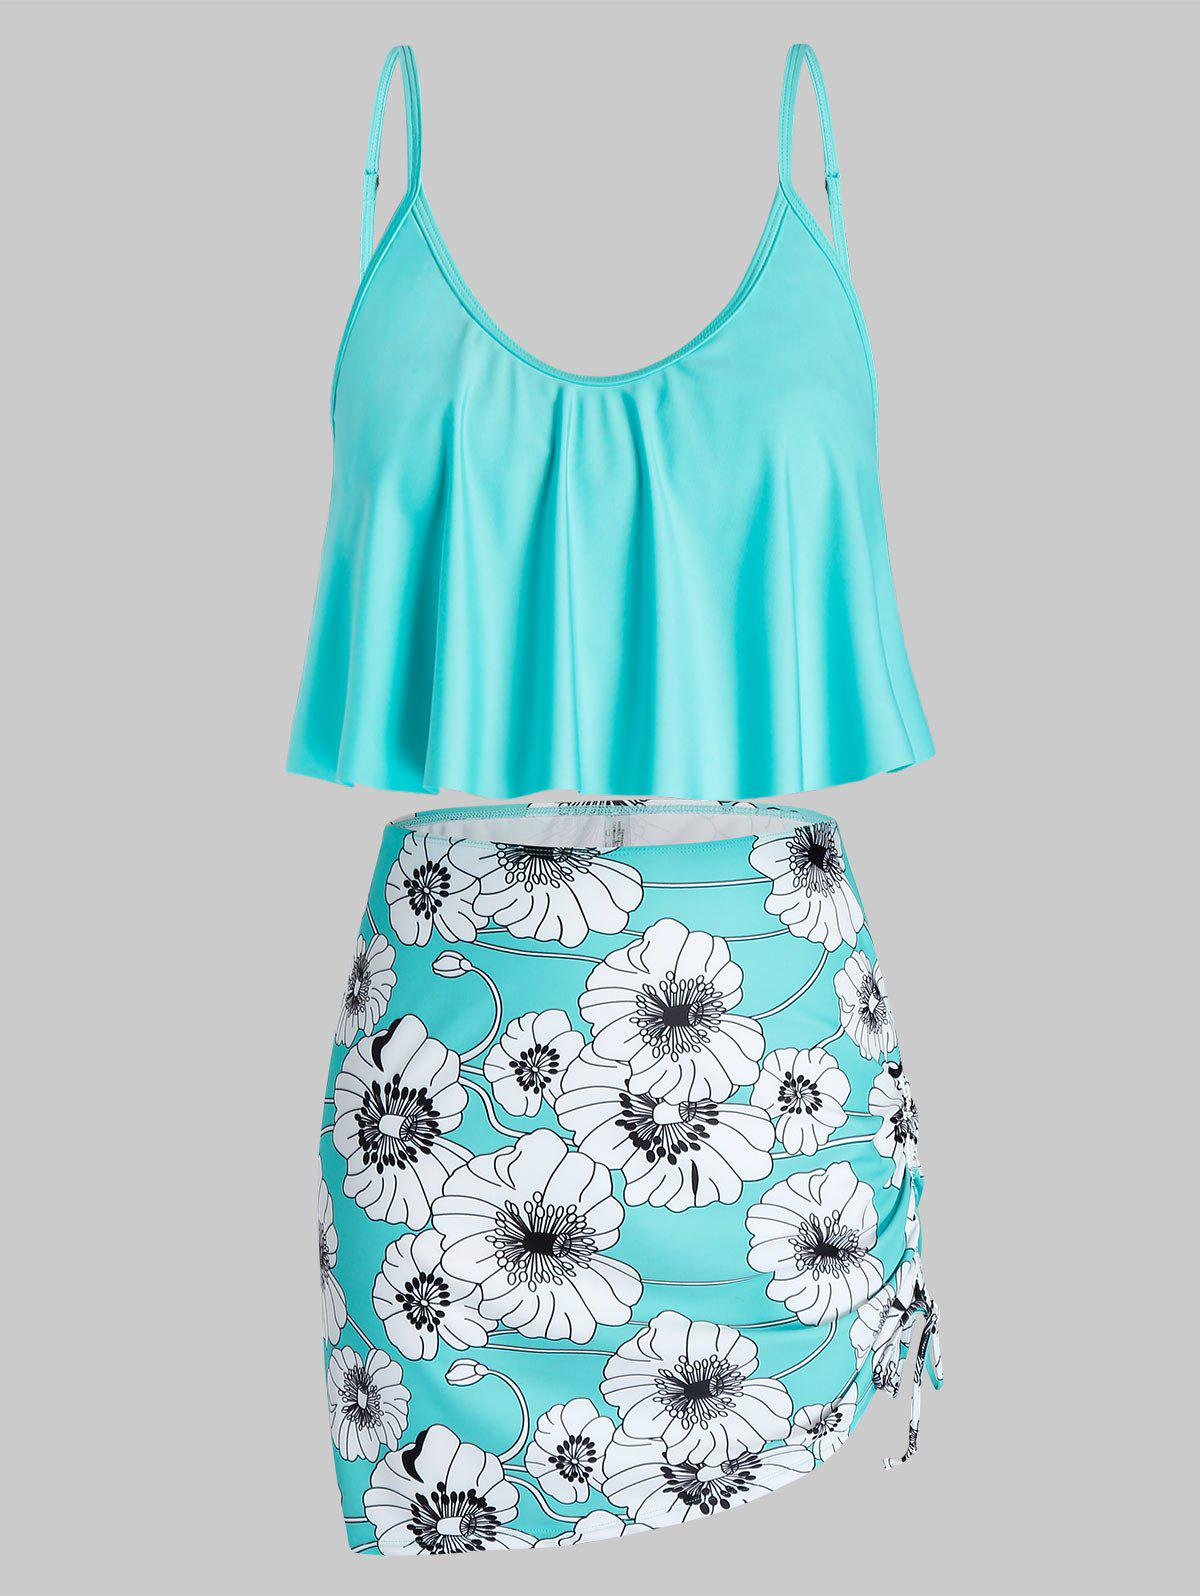 Plus Size Floral Print Ruffled Cinched Three Piece Swimsuit Rosegal